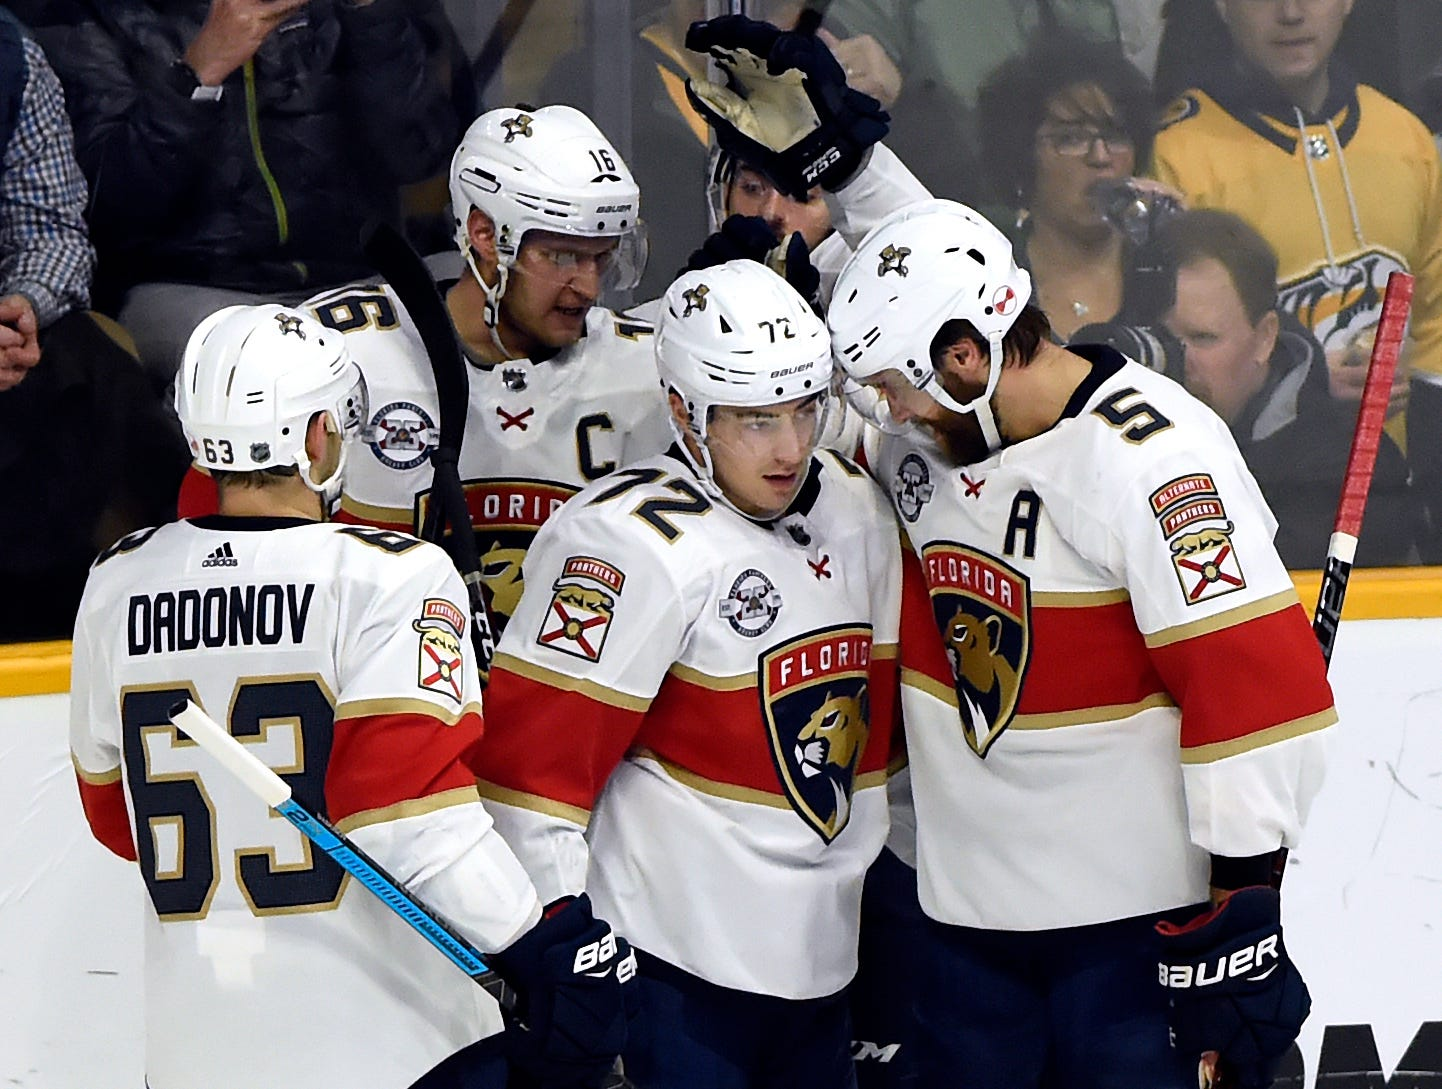 Florida Panthers center Frank Vatrano (72) celebrates with teammates after scoring a goal against the Nashville Predators during the first period of an NHL hockey game Saturday, Jan. 19, 2019, in Nashville, Tenn.